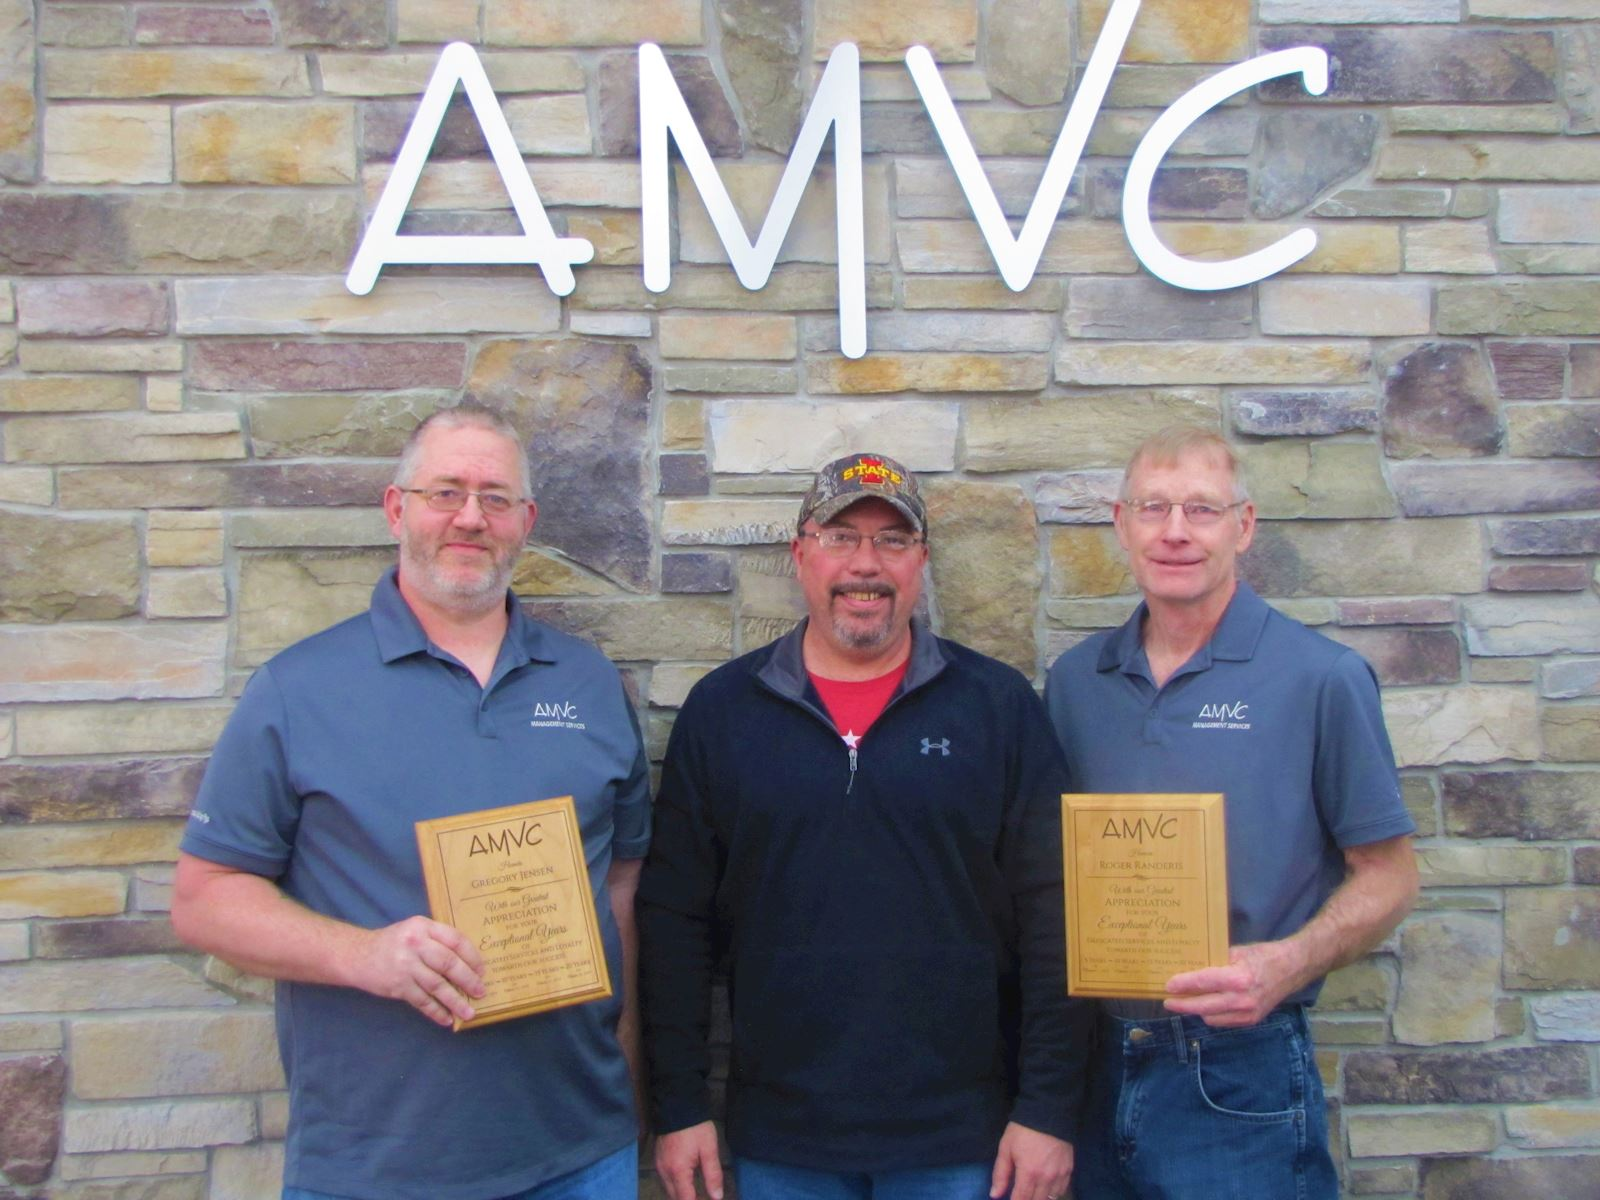 Jensen and Randeris celebrate 20 years with AMVC